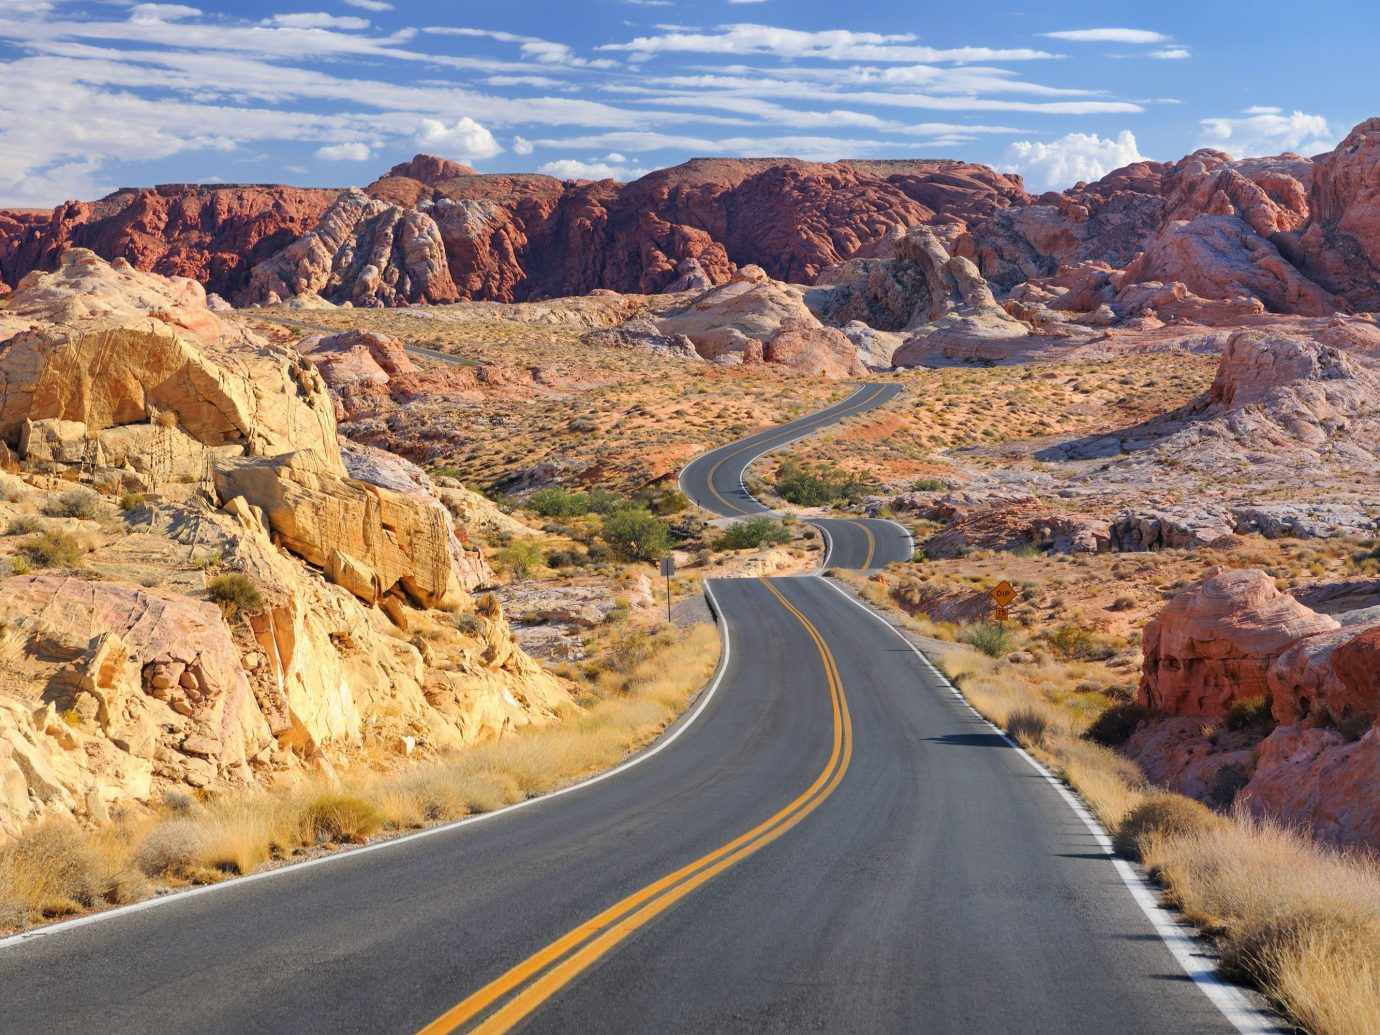 Trip Ideas valley mountain outdoor rock canyon road landform geographical feature natural environment rocky wadi landscape badlands Desert infrastructure highway mountain pass plateau geology nonbuilding structure road trip hillside